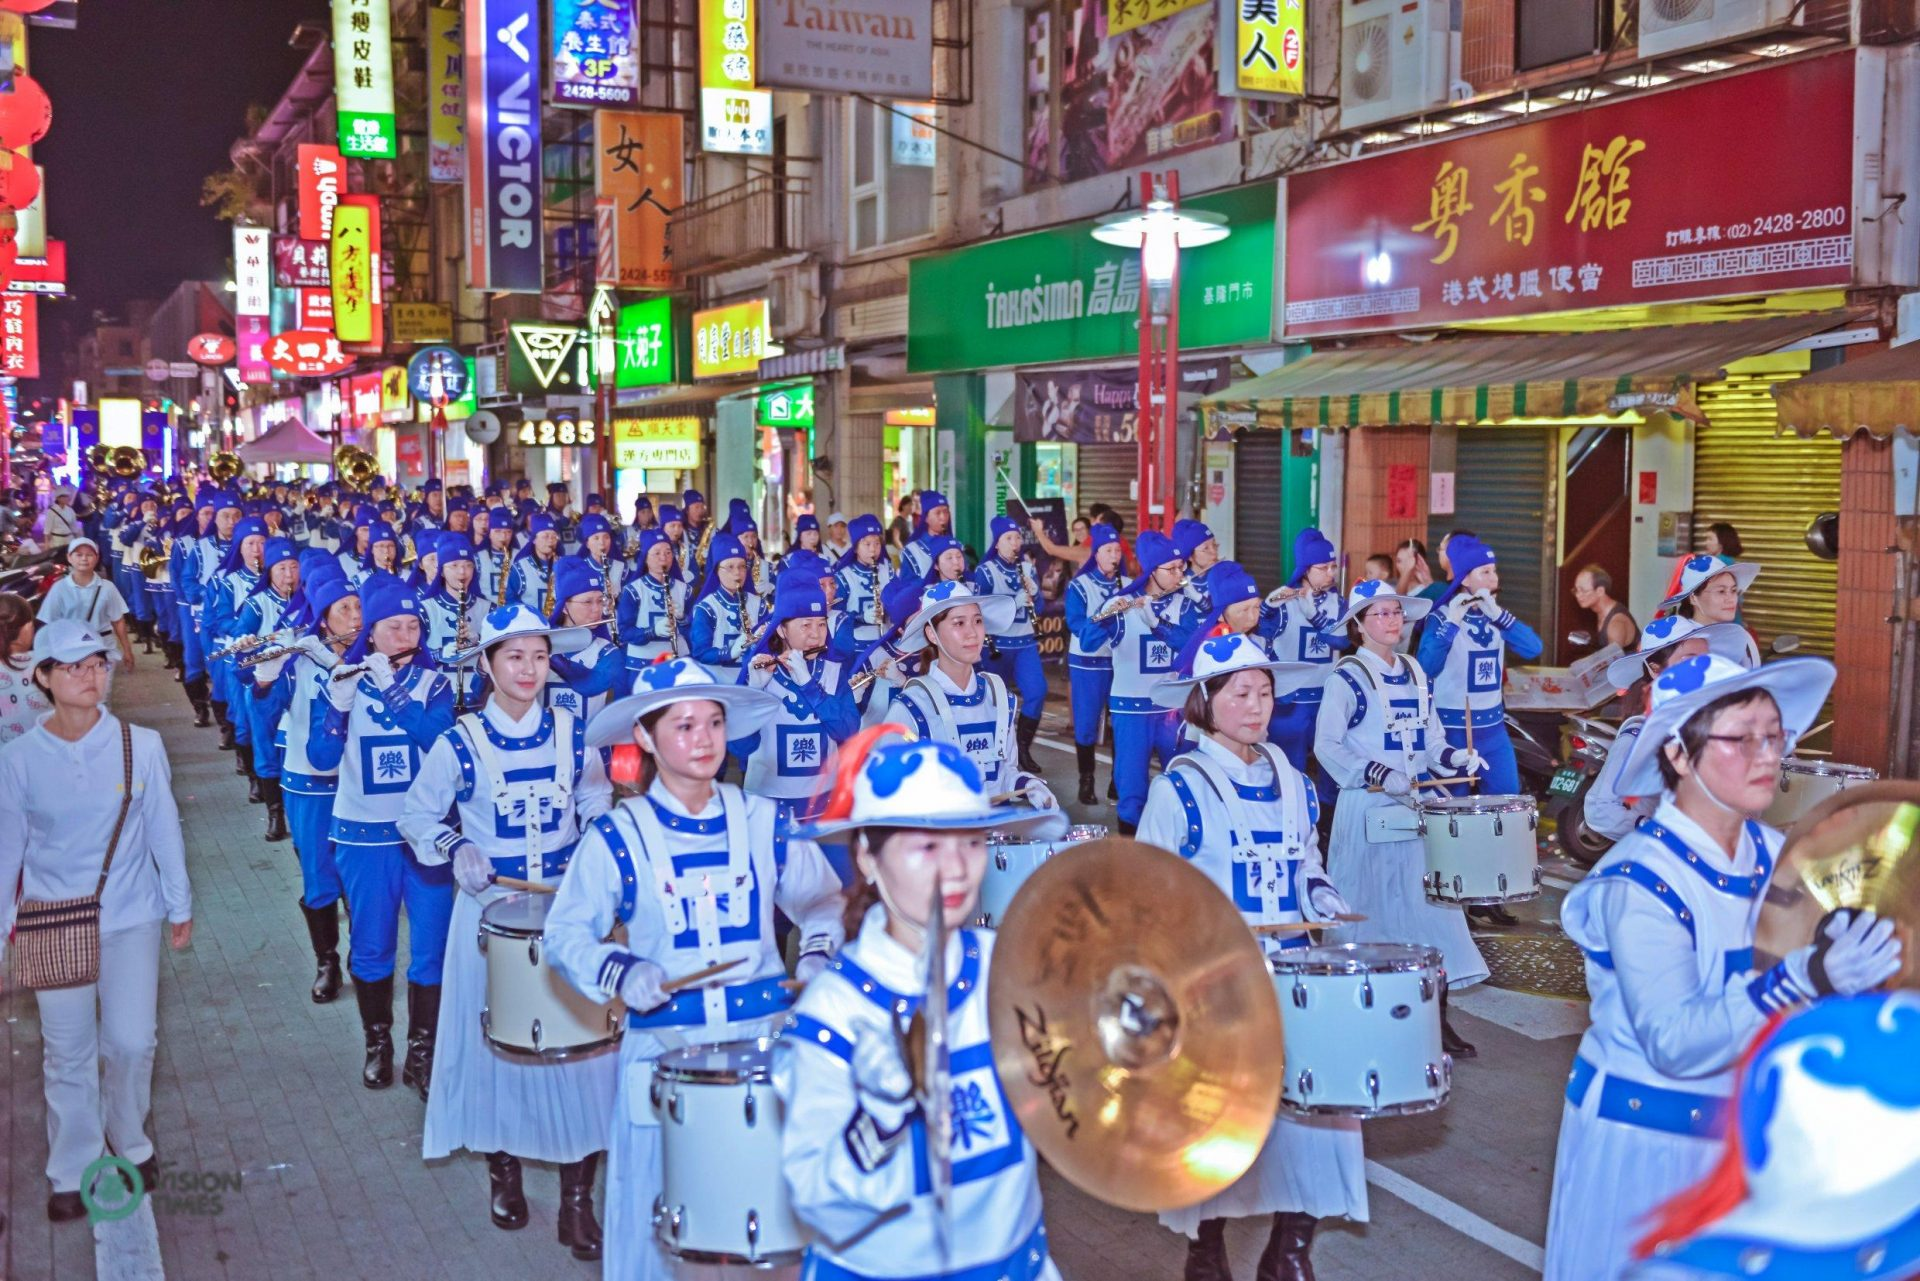 The Falun Dafa Tian Guo Marching Band is one of the most popular performing groups in the procession. (Image: Johnny Lin / Vision Times)